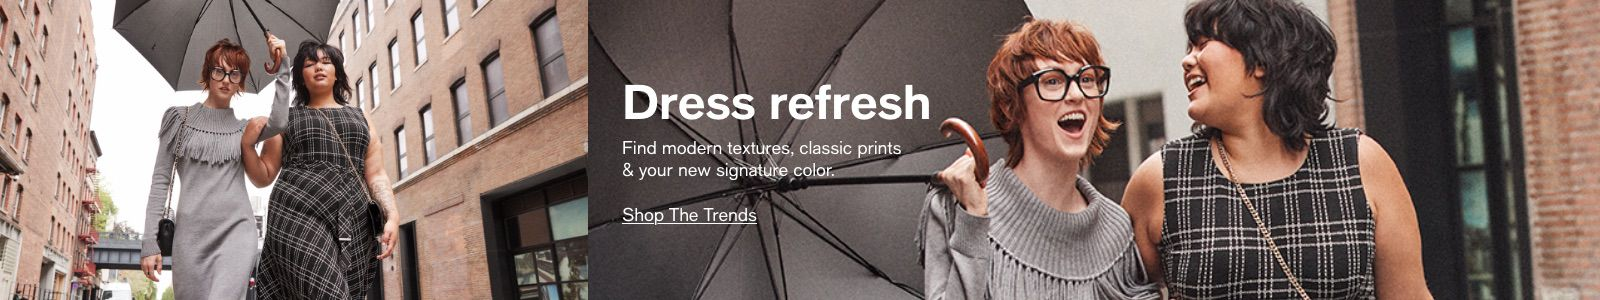 Dress refresh, Find modern textures, classic prints and your new signature color, Shop The Trends